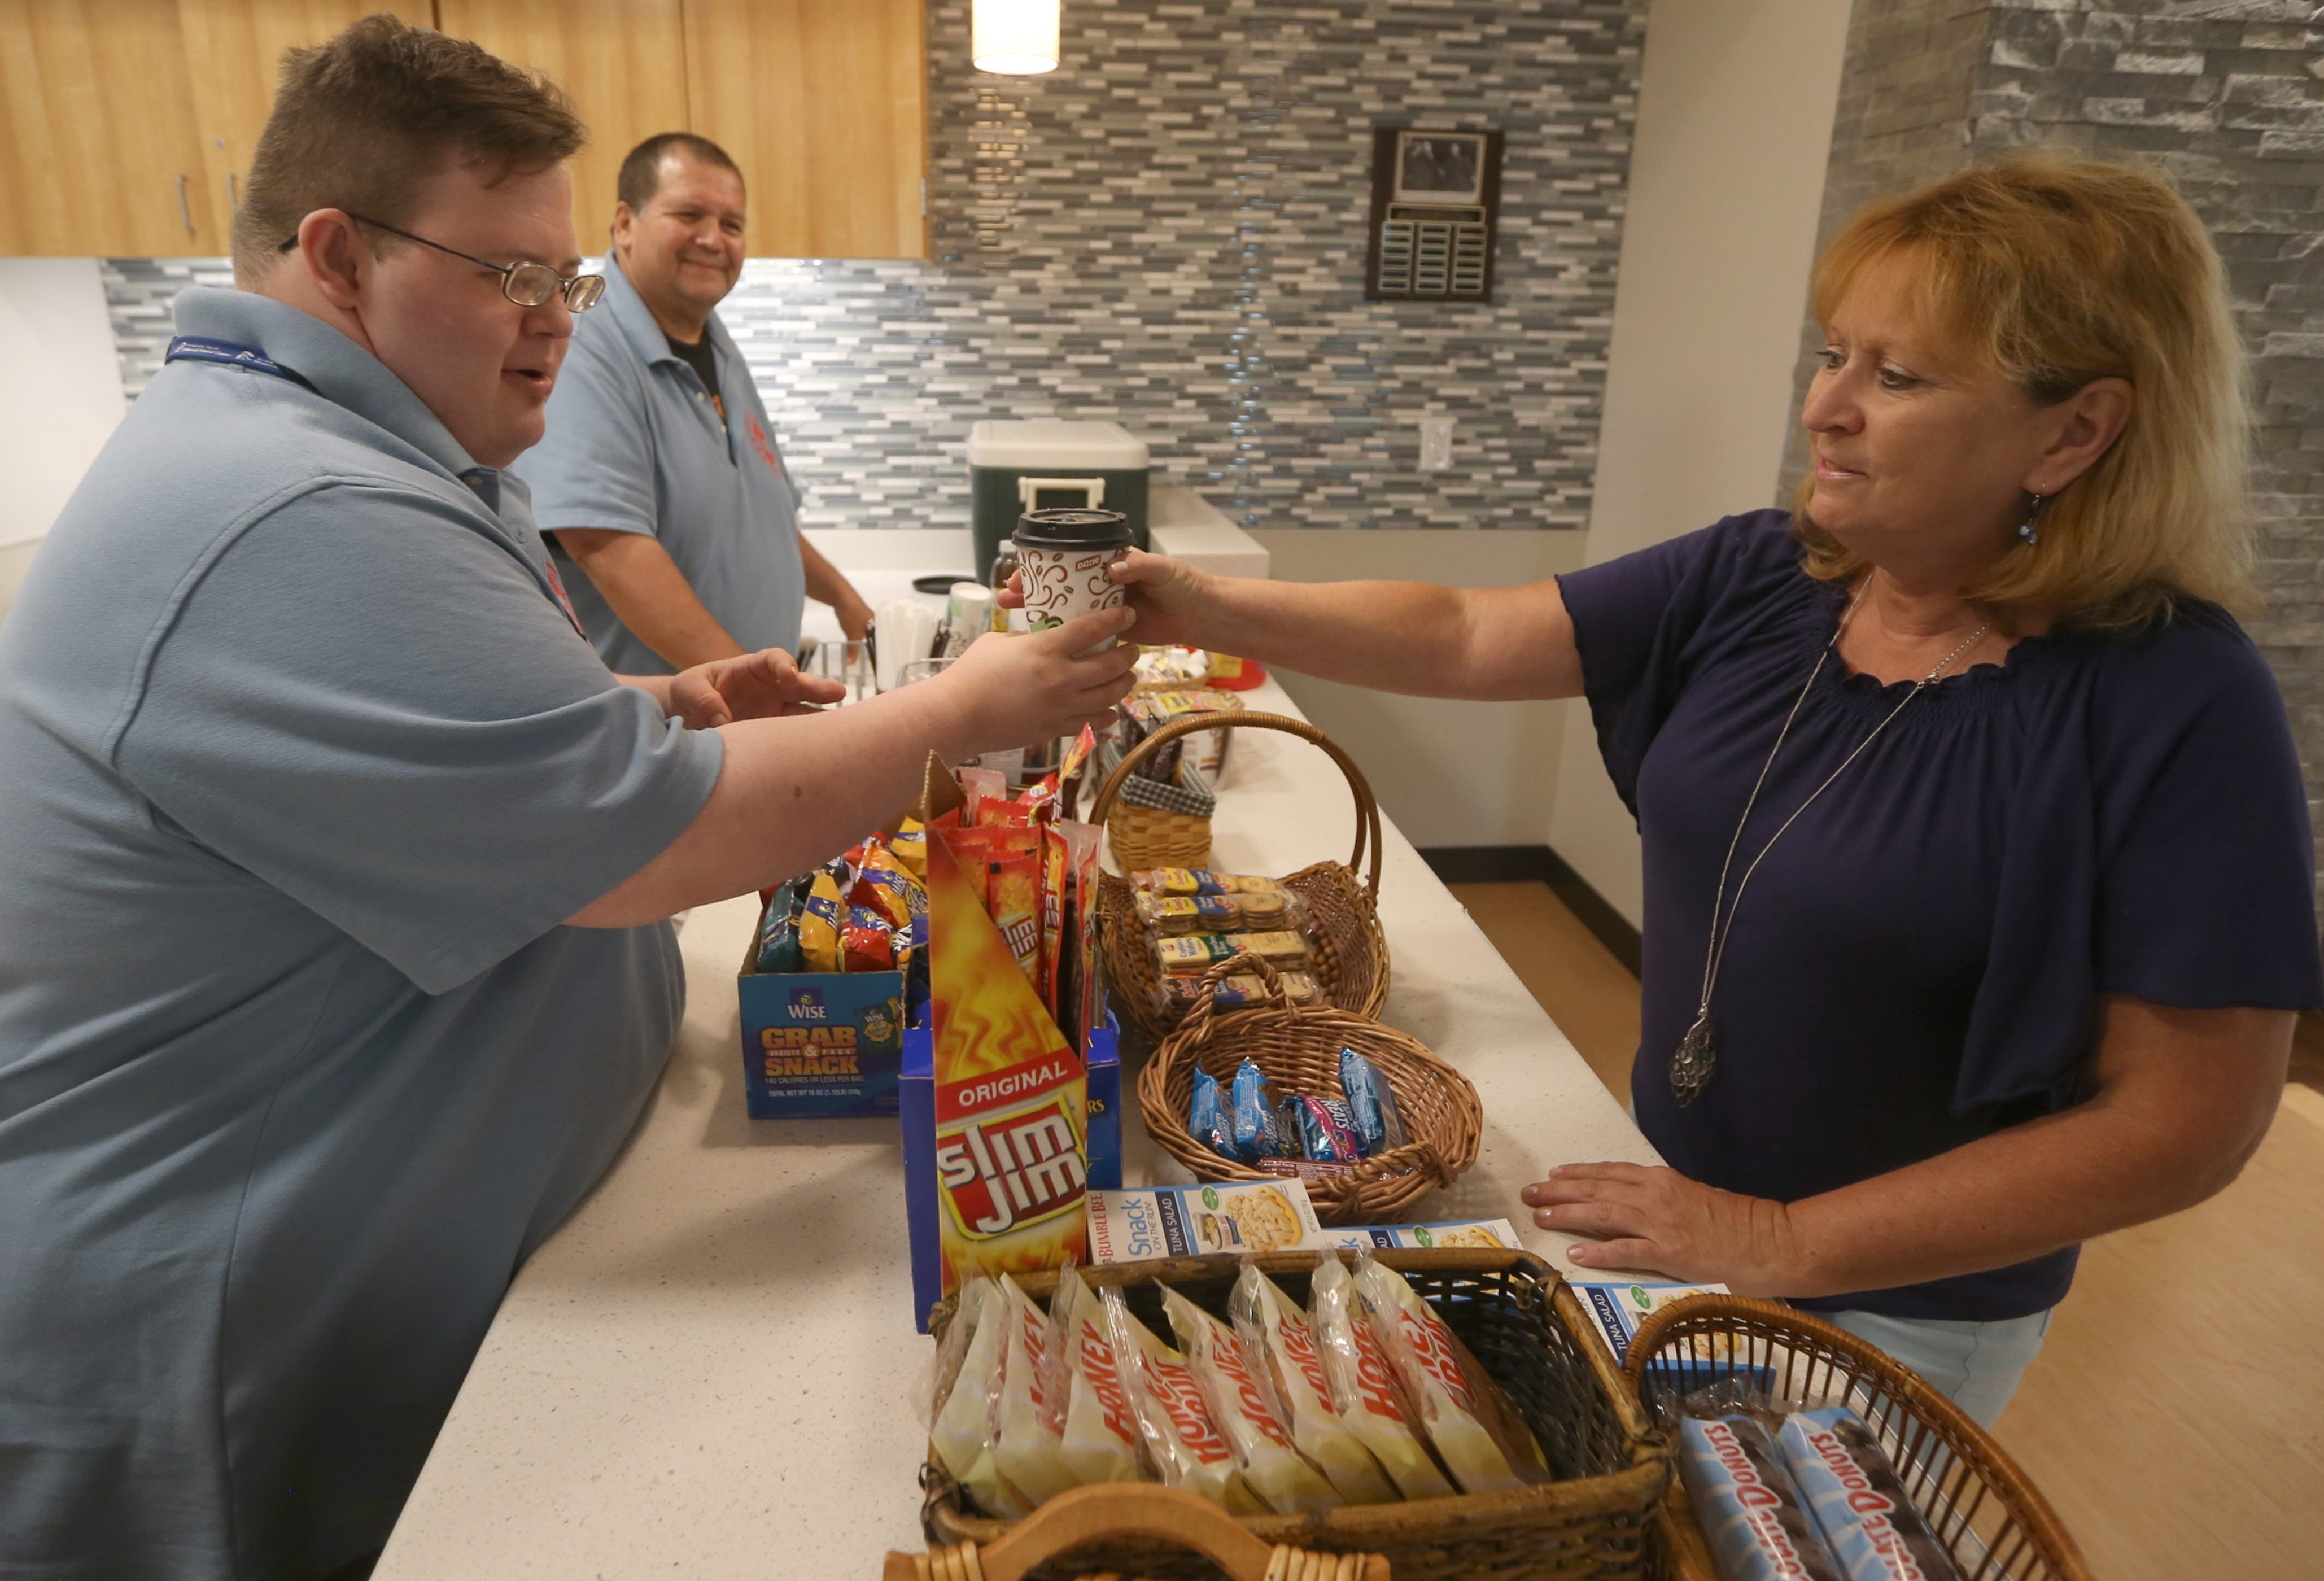 George Augstell sells a coffee to Nancy Secic at his coffee shop in the Golisano Center in Buffalo as his employee and job coach Eddie Chew looks on.  Augstell, who has Down syndrome, opened Uncle Bill's Coffee Stop with help from People Inc.